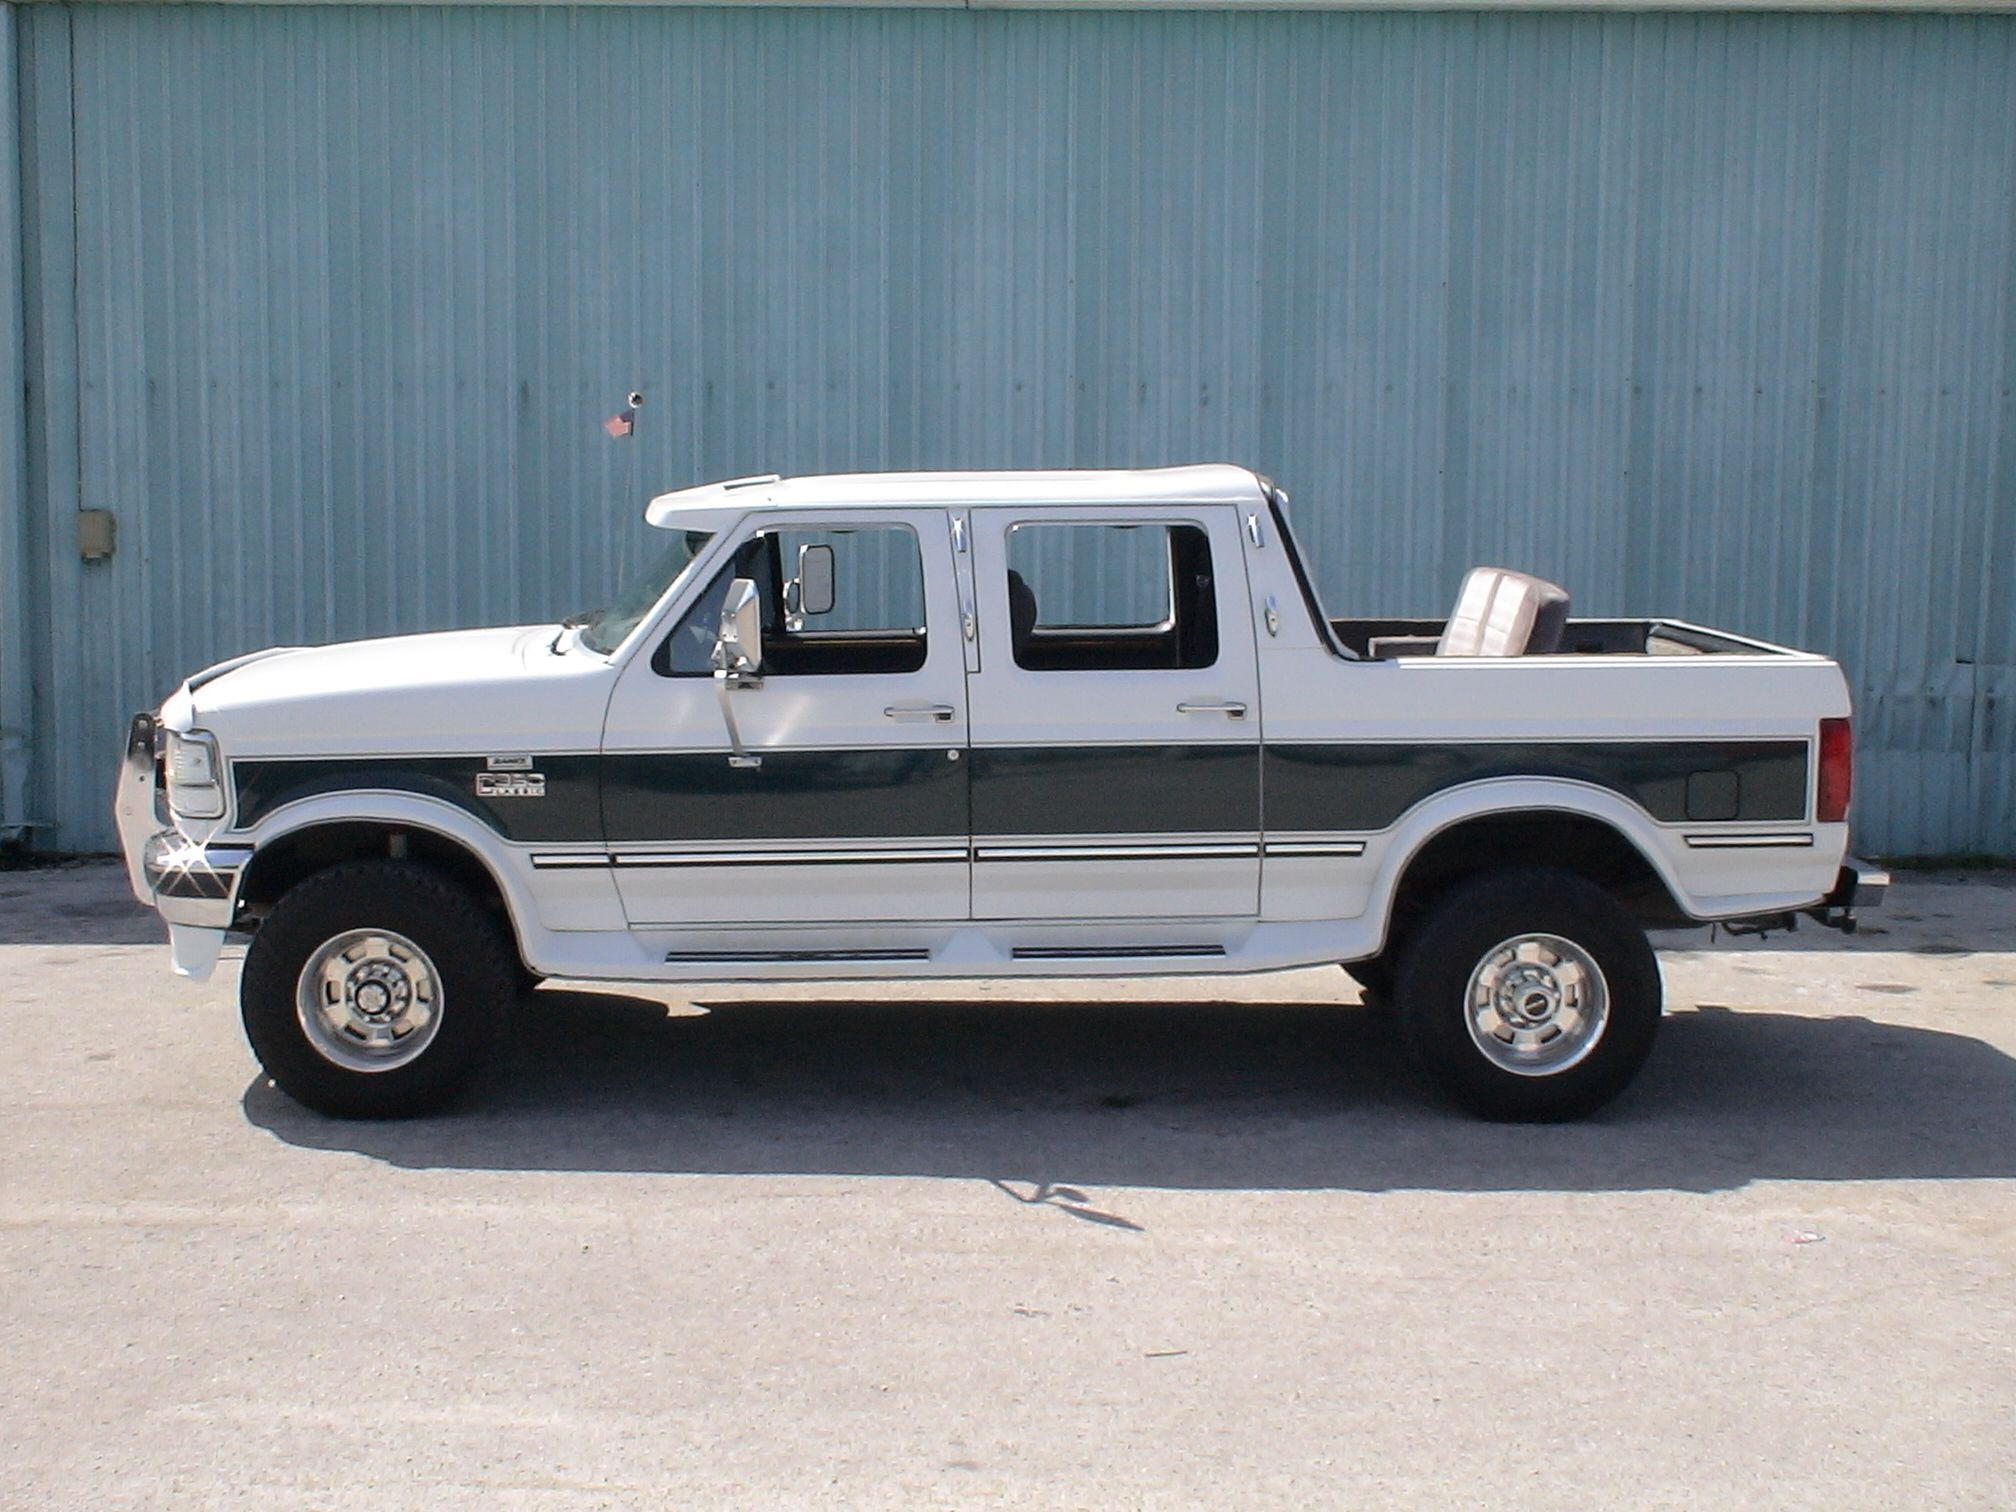 Ford Truck Enthusiasts >> 4 Door Bronco For Sale Ford Truck Enthusiasts Forums 4